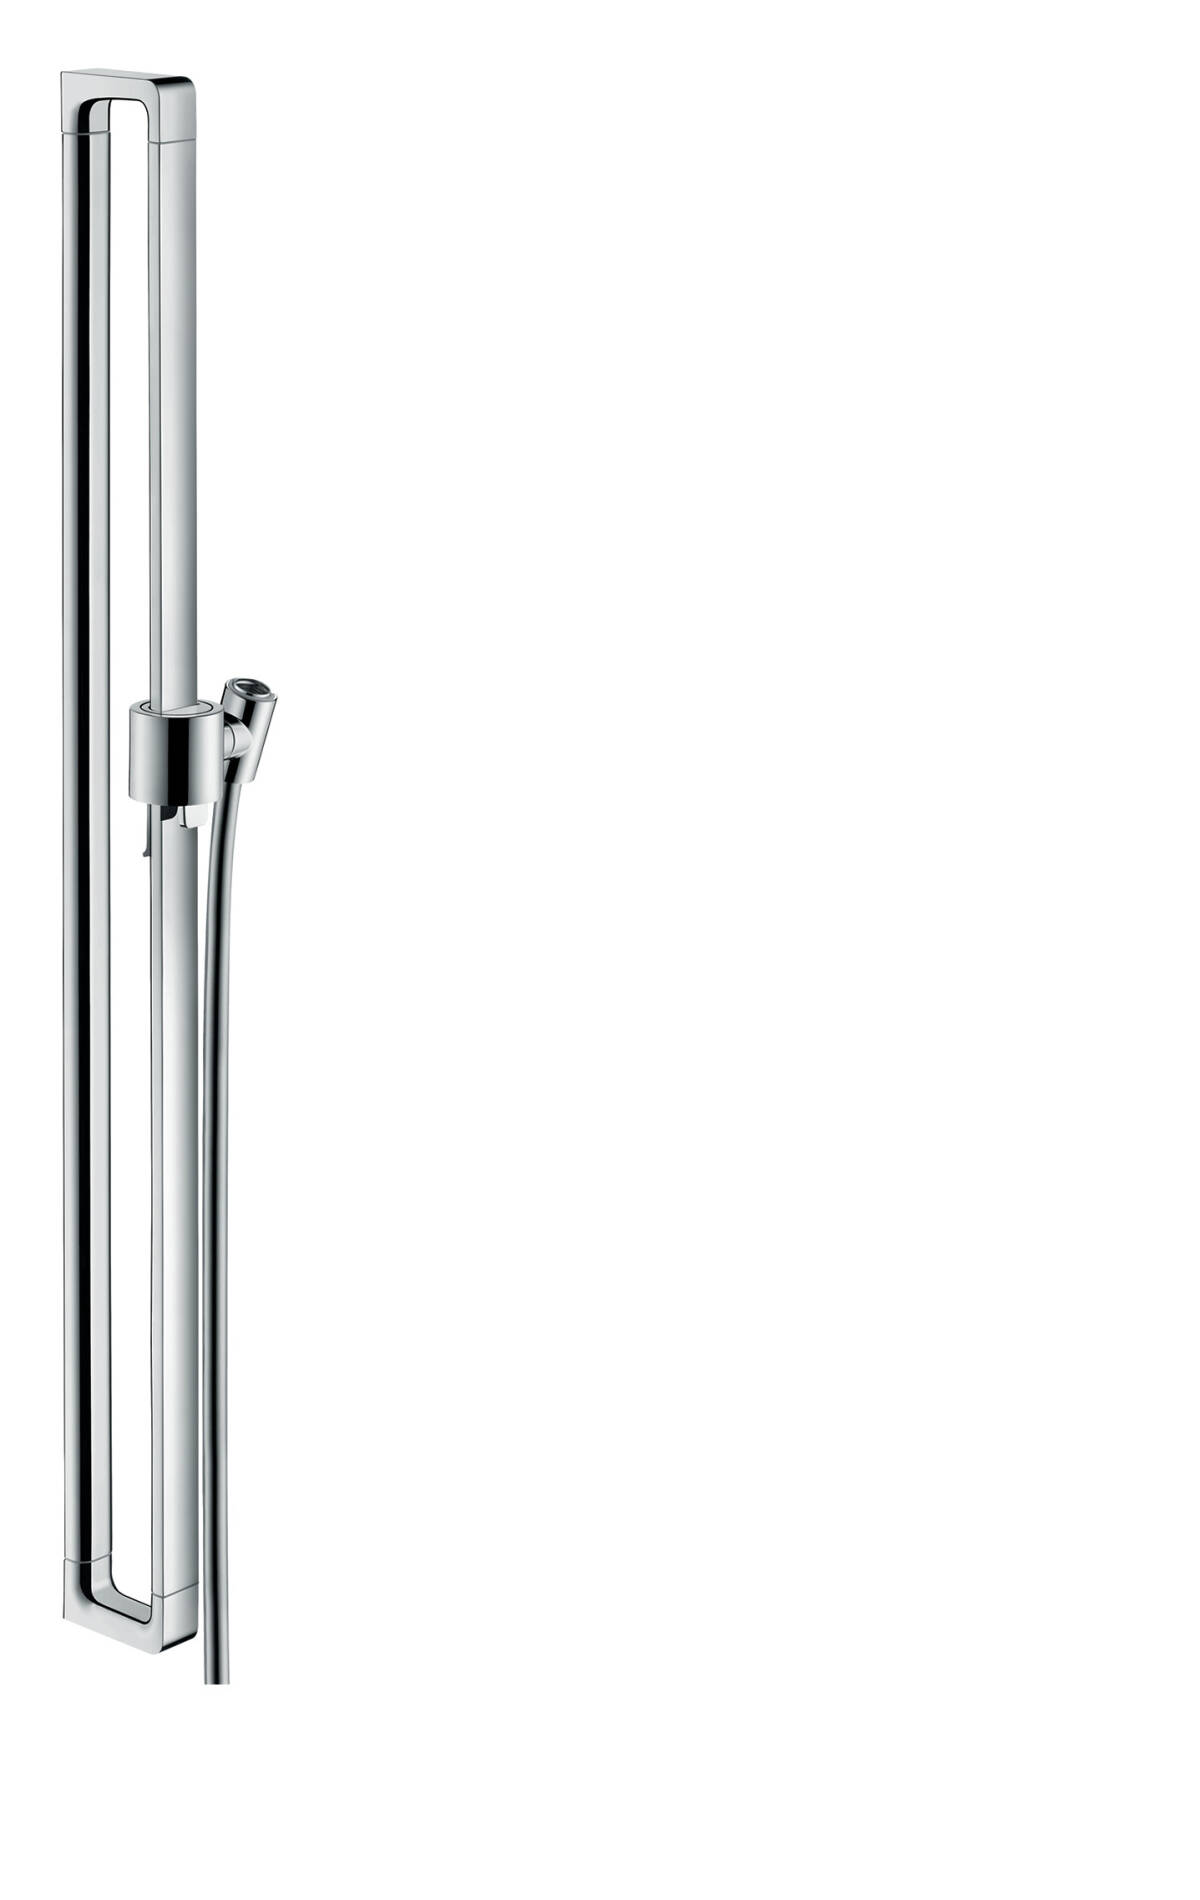 Shower bar 0.90 m, Brushed Nickel, 36736820